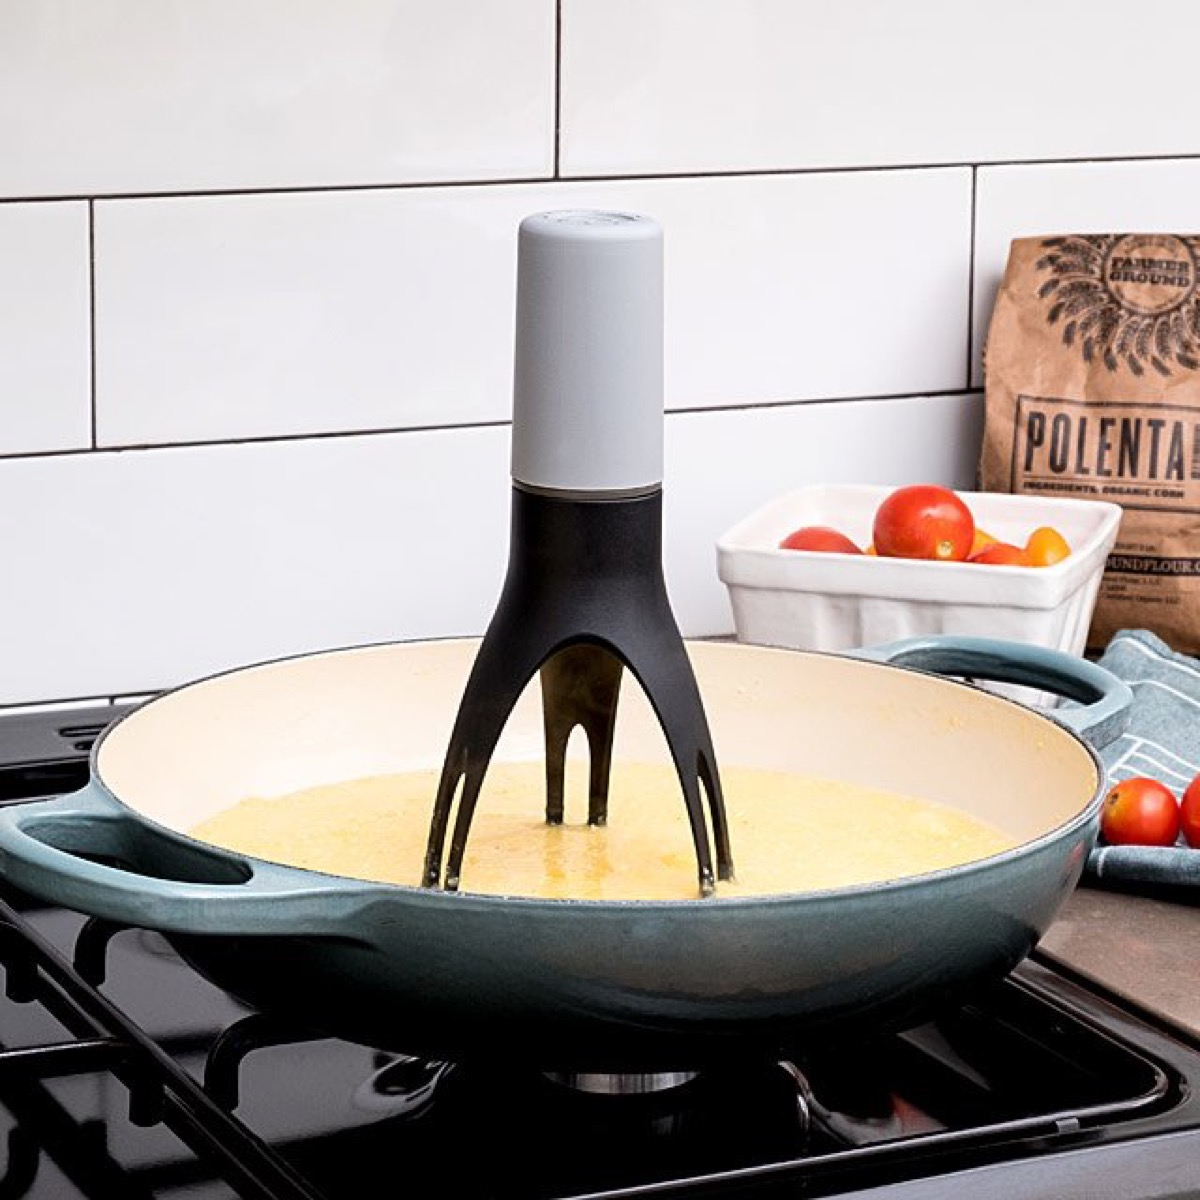 pan with automatic stirrer